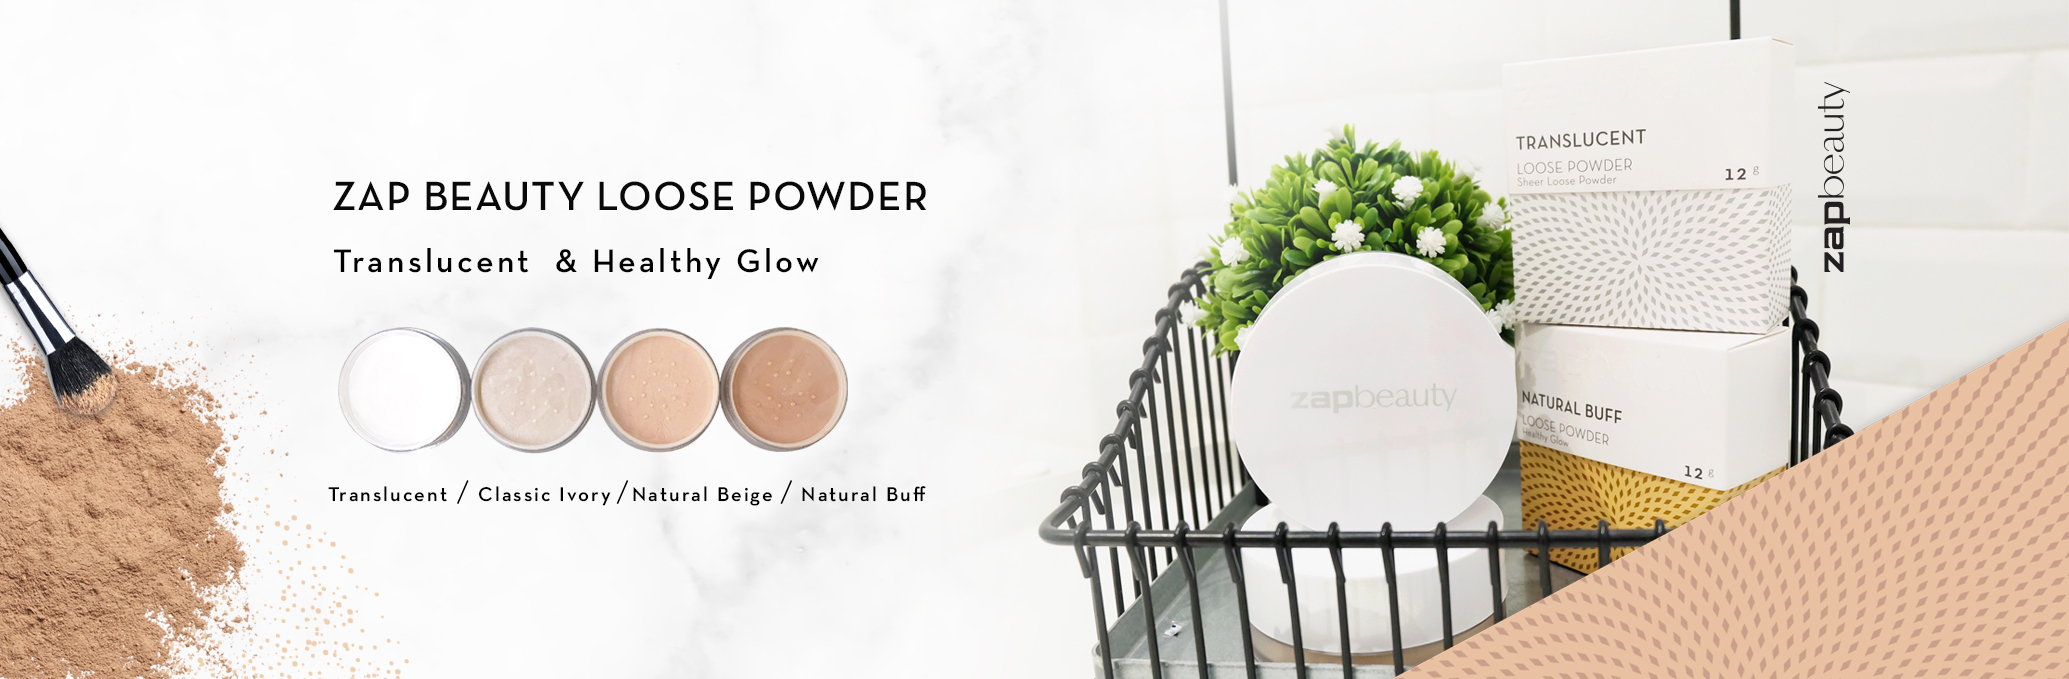 ZAP BEAUTY LOOSE POWDER